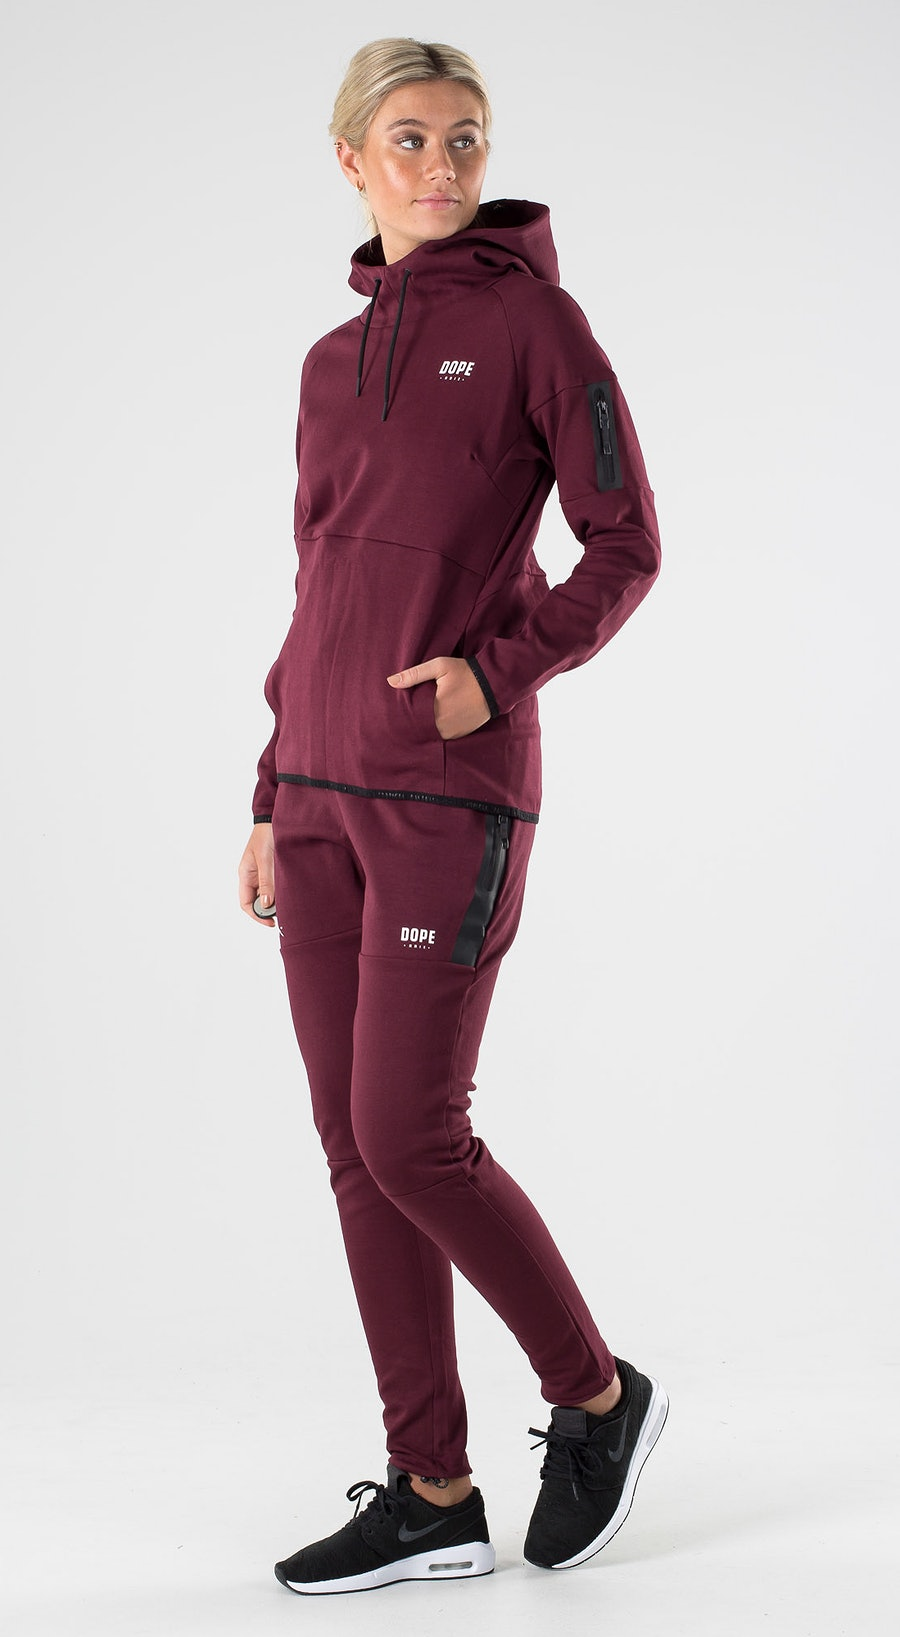 Dope Ronin 2X-UP W Burgundy Outfit Multi